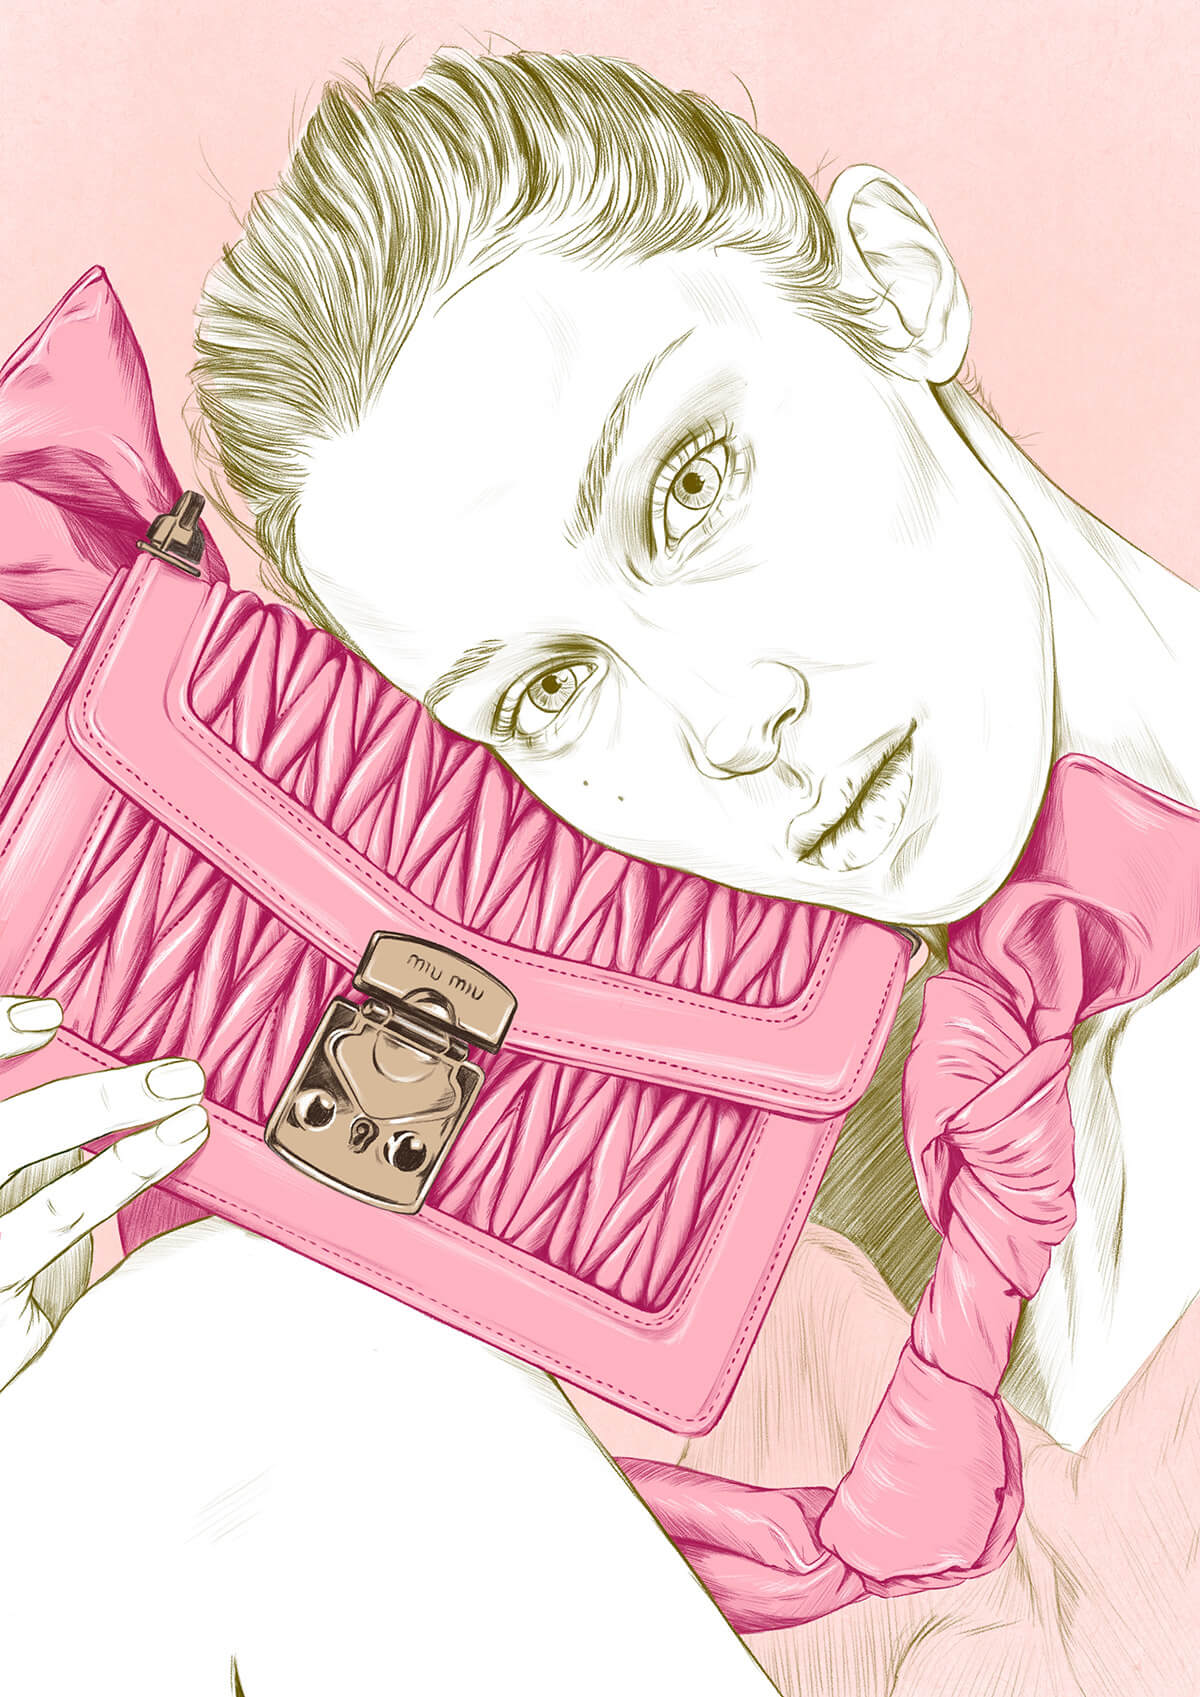 Miu Miu SS 2020 fashion illustration